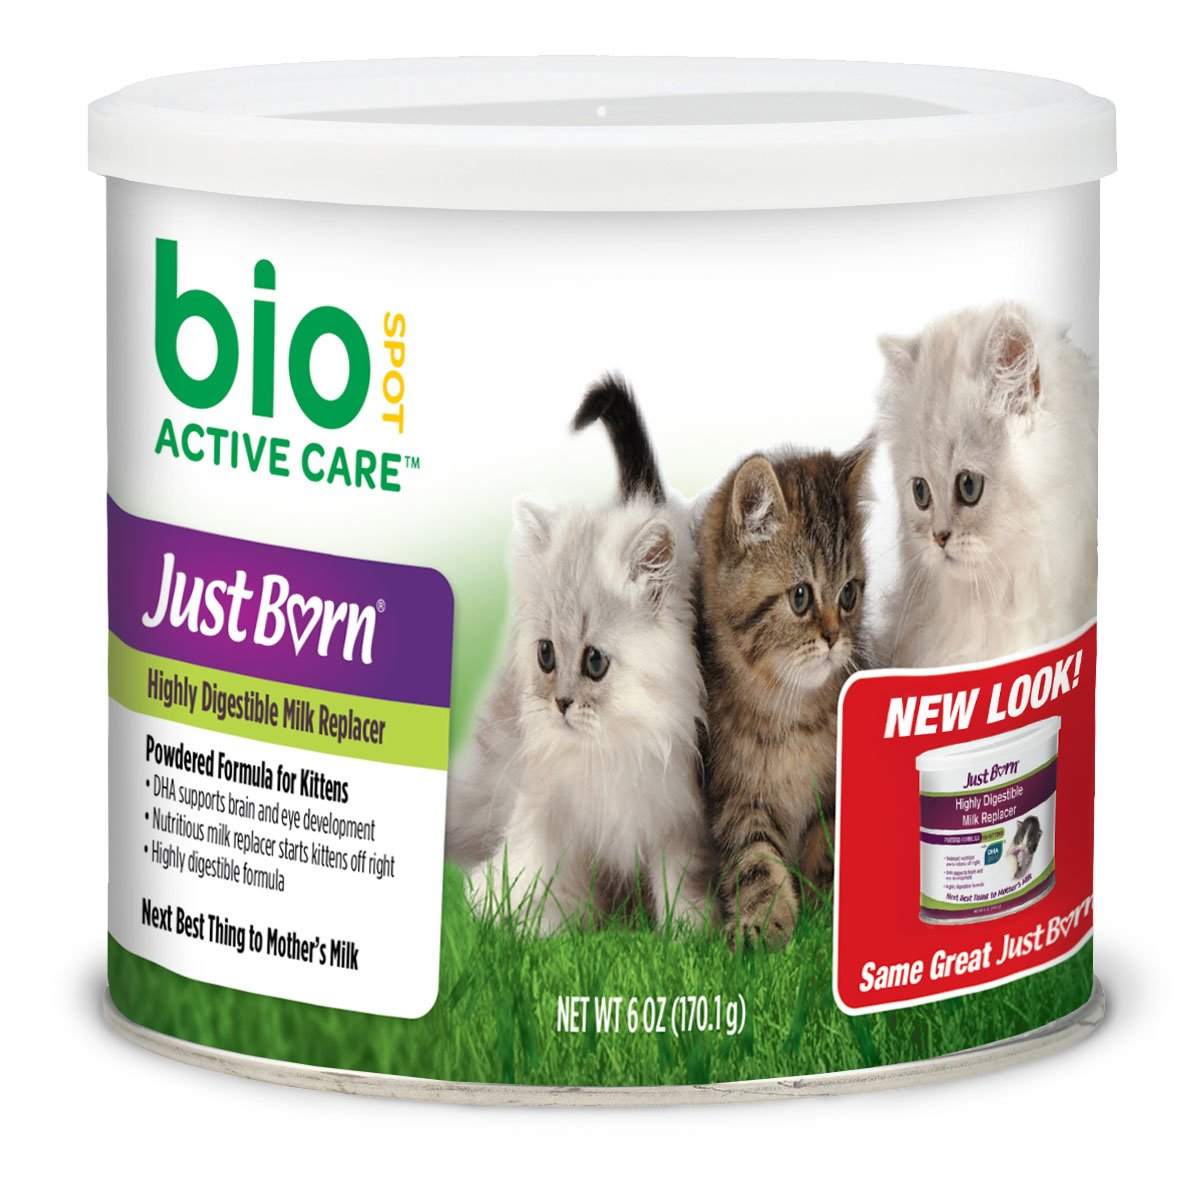 Buy Bio Spot Active Care Just Born With Dha Milk Replacer For Kittens Powder Formula Online At Low Prices In India Amazon In